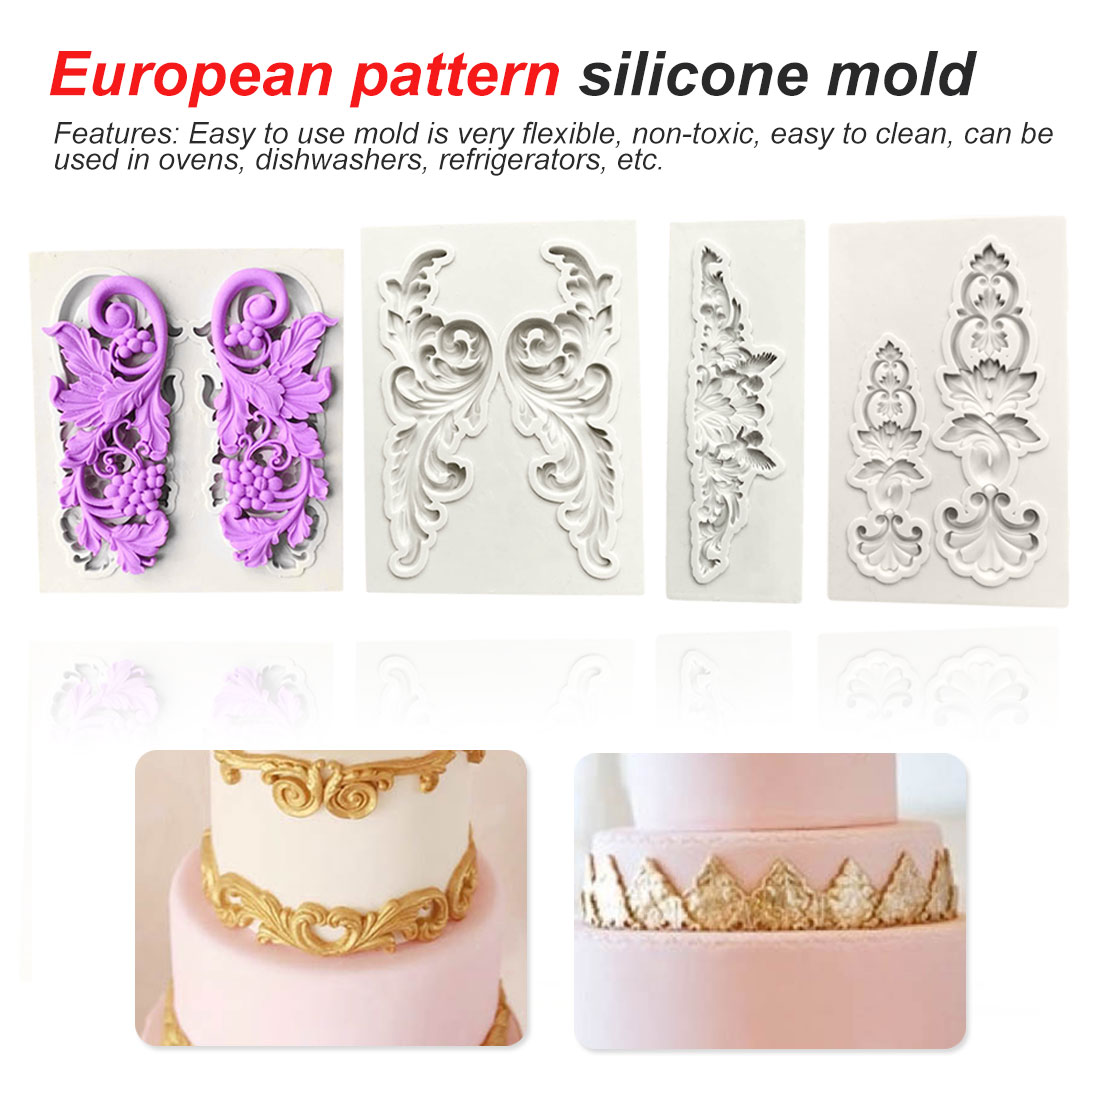 Cake Decorating Tools Border European Relief Silicone Mold Fondant Mold Chocolate Gumpaste Mold Cake decorating Tools cake mold